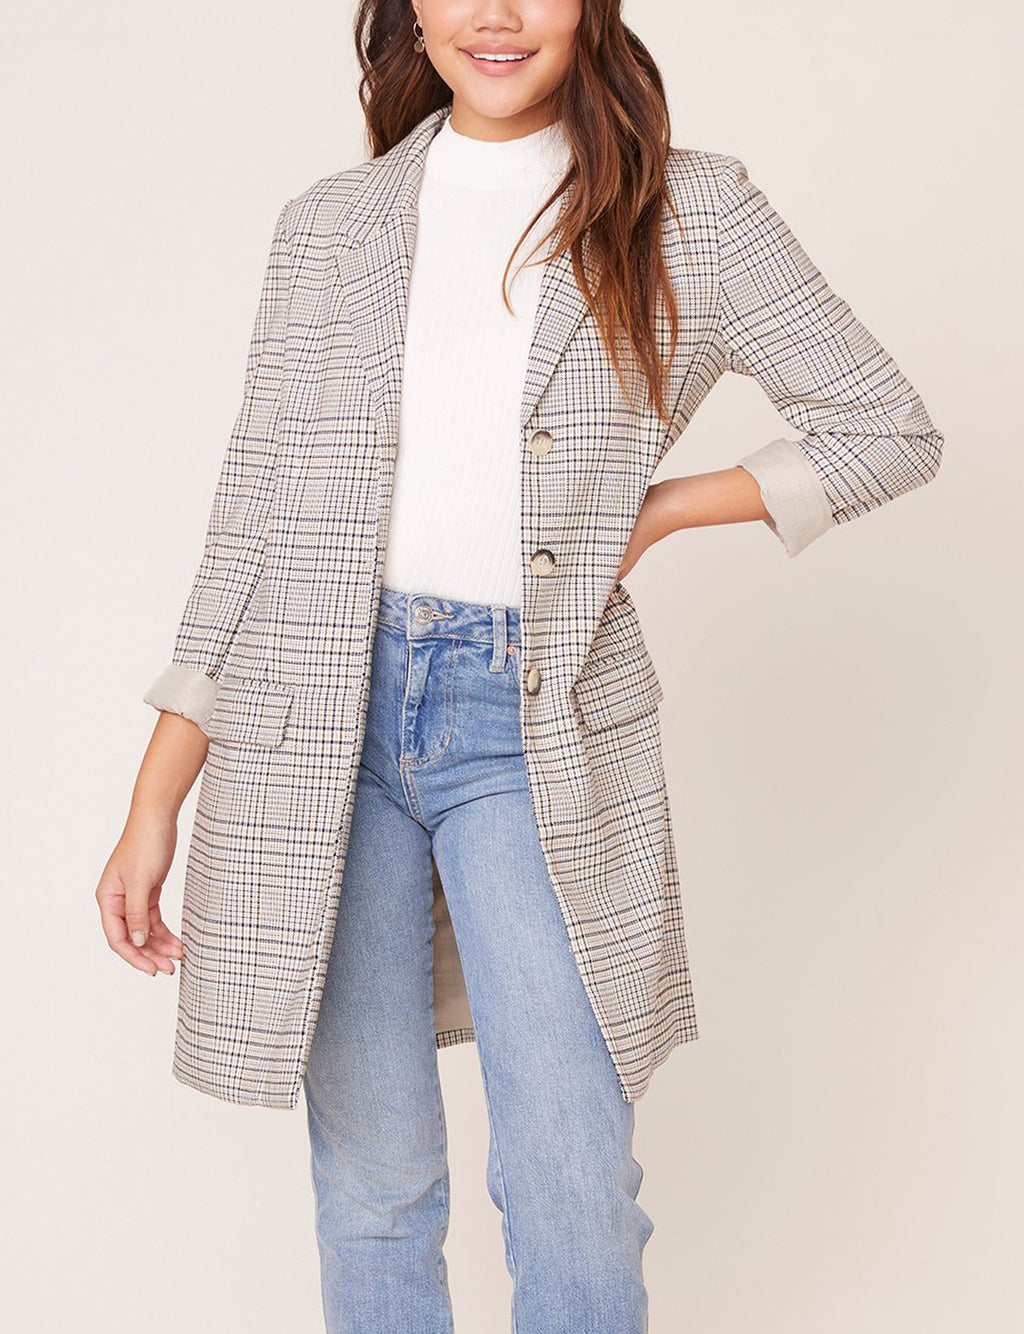 BB Dakota Plaid Reputation Boyfriend Coat in Light Taupe